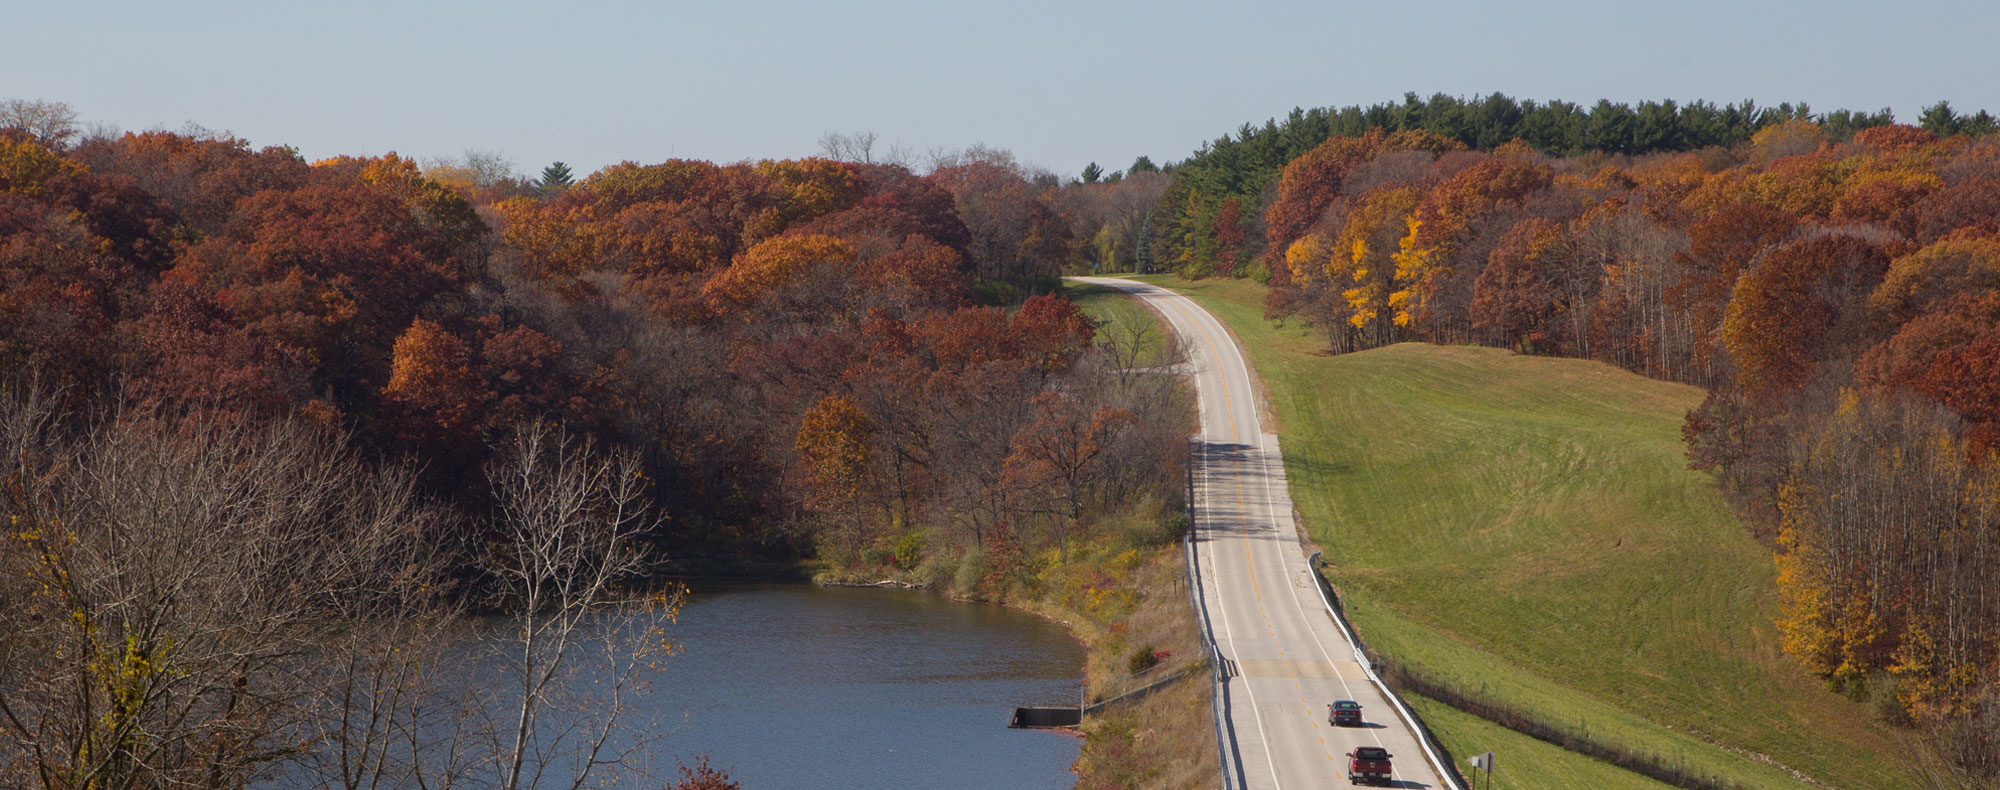 Great River Road Illinois - Plan Your Trip - Our Regions ...